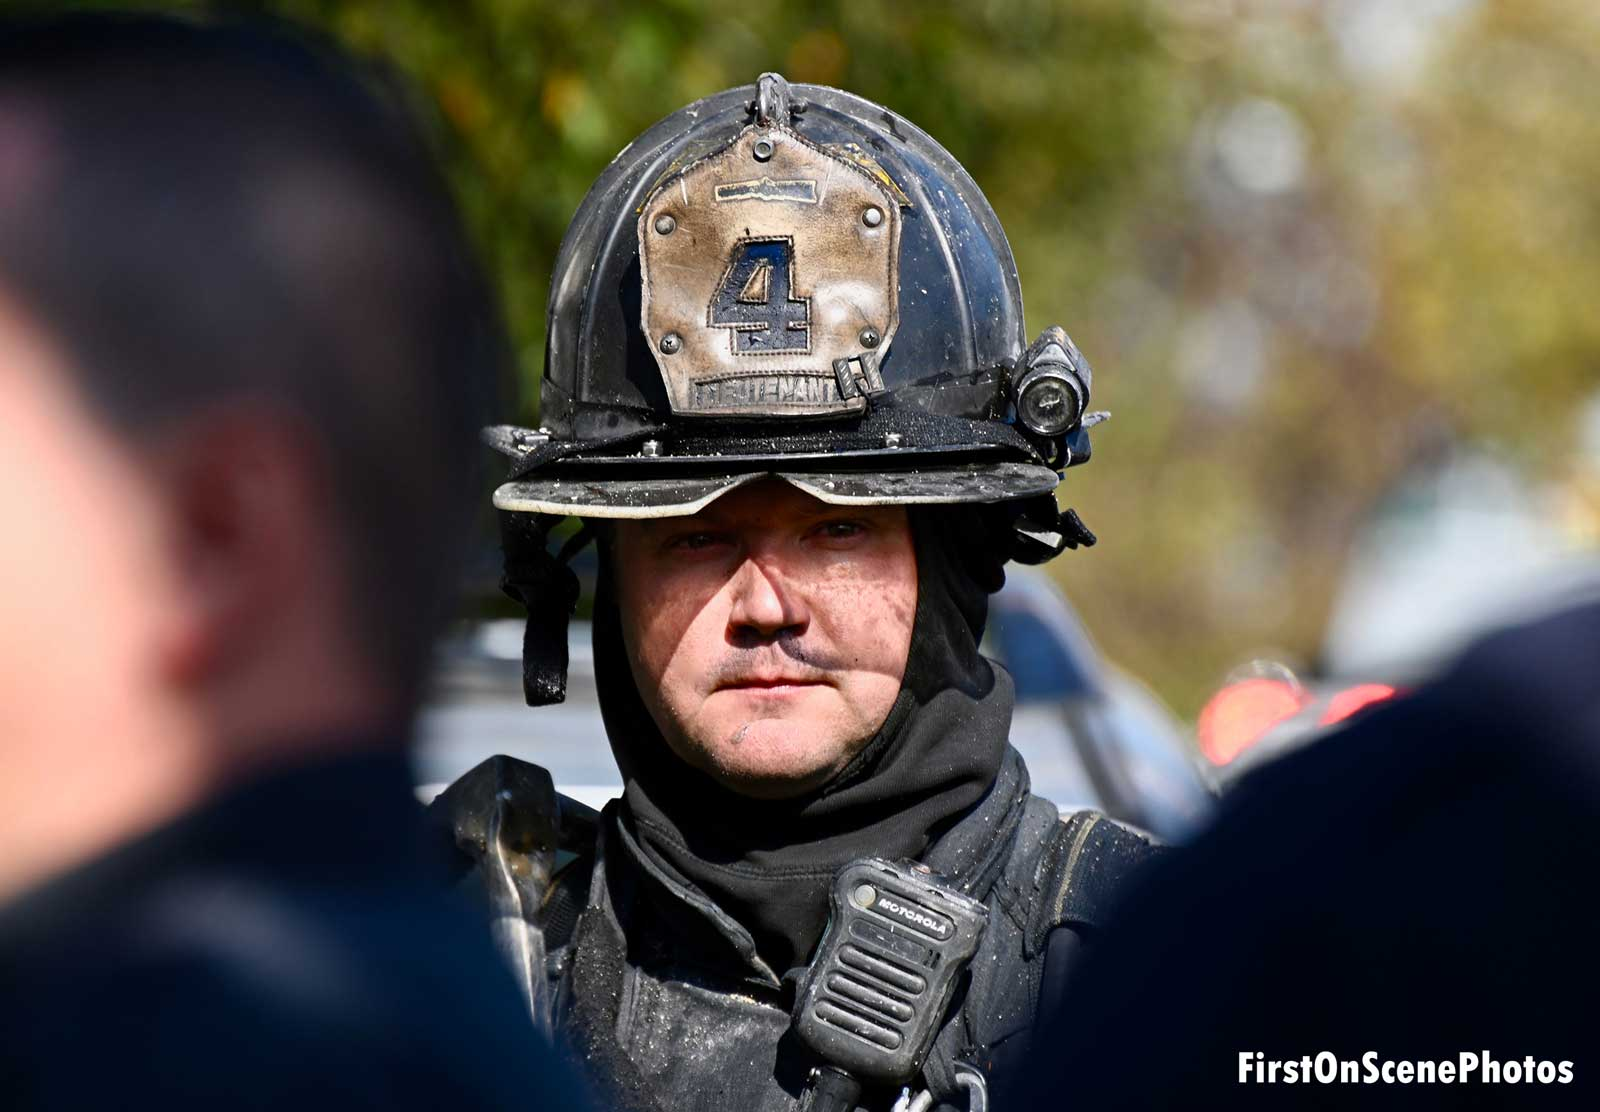 Firefighter at the scene of a fire in Queens, NY